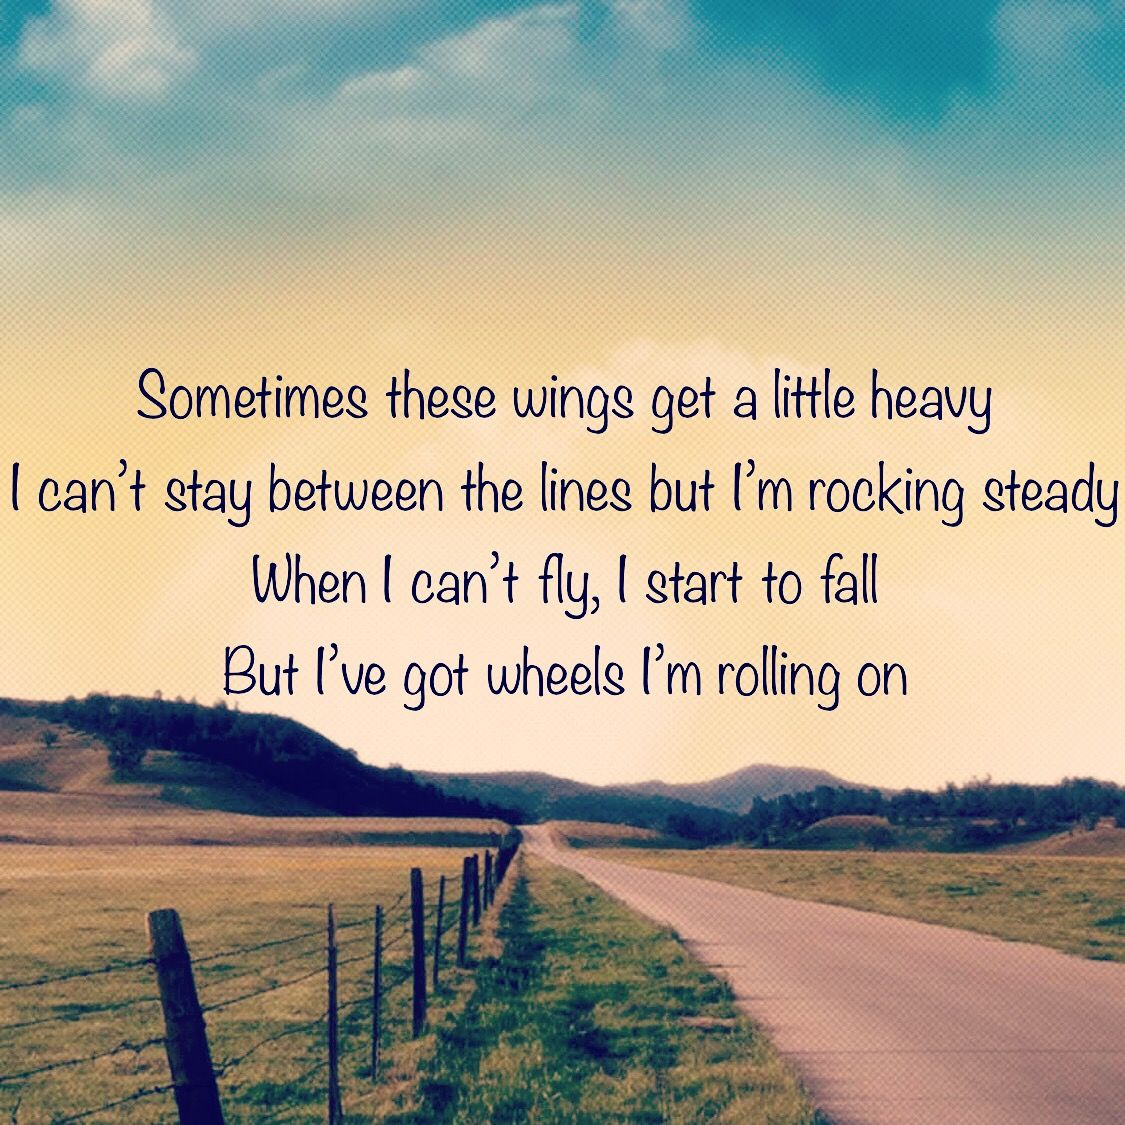 Tattoo Quotes Music: Miranda Lambert - I've Got Wheels Lyrics